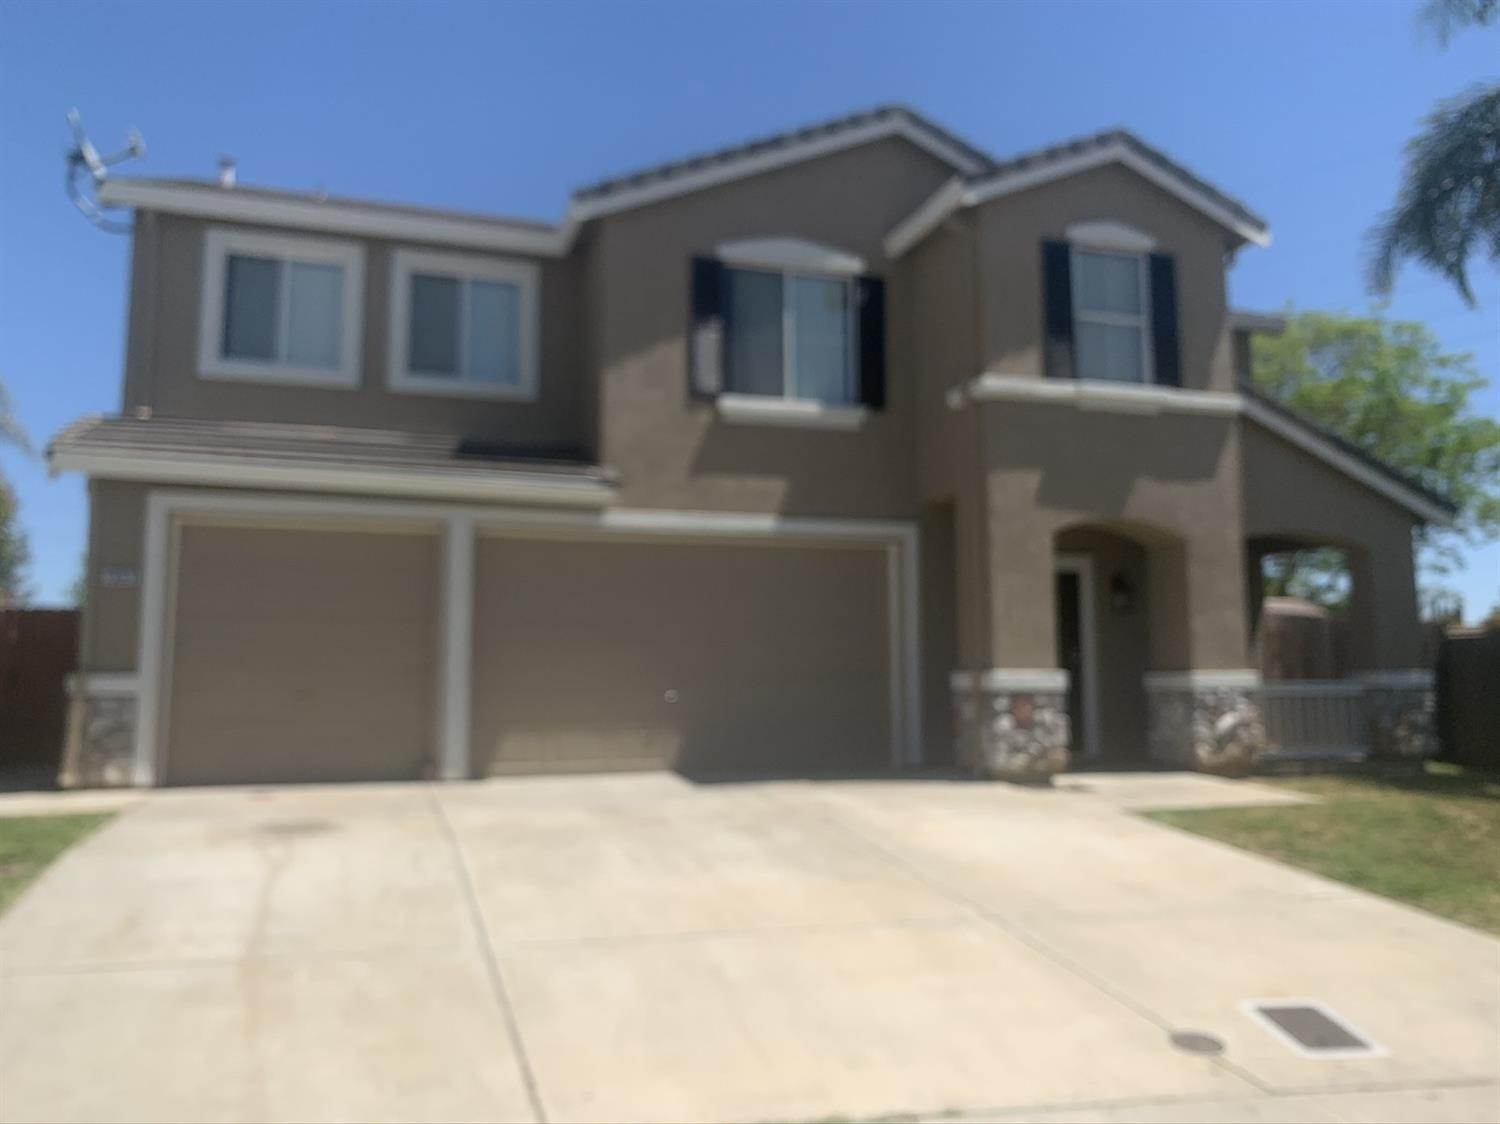 Single Family Homes for Active at 1807 Van Gogh Lane Stockton, California 95206 United States